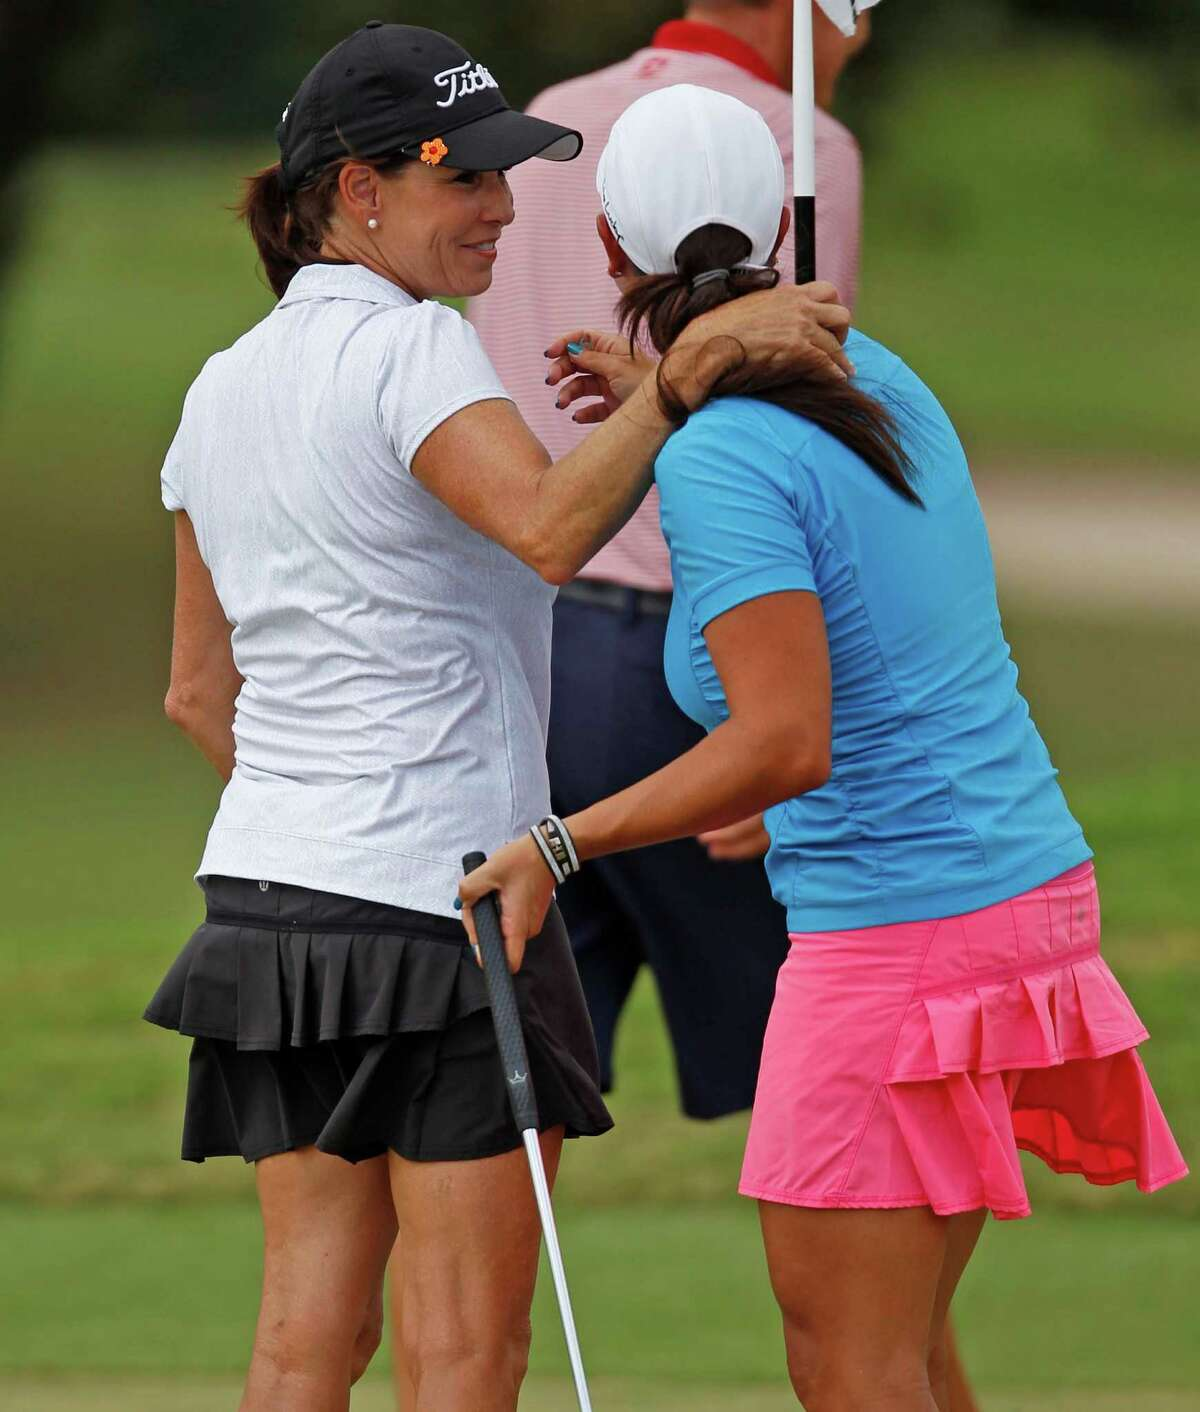 Karen Murphy, left, hugs opponent Jessica Surber on the No. 16 green after Murphy defeated Surber, 3&2, to win the Greater Houston Women's City Amateur Championship, Friday, September 27, 2013 at Memorial Park Golf Course in Houston.